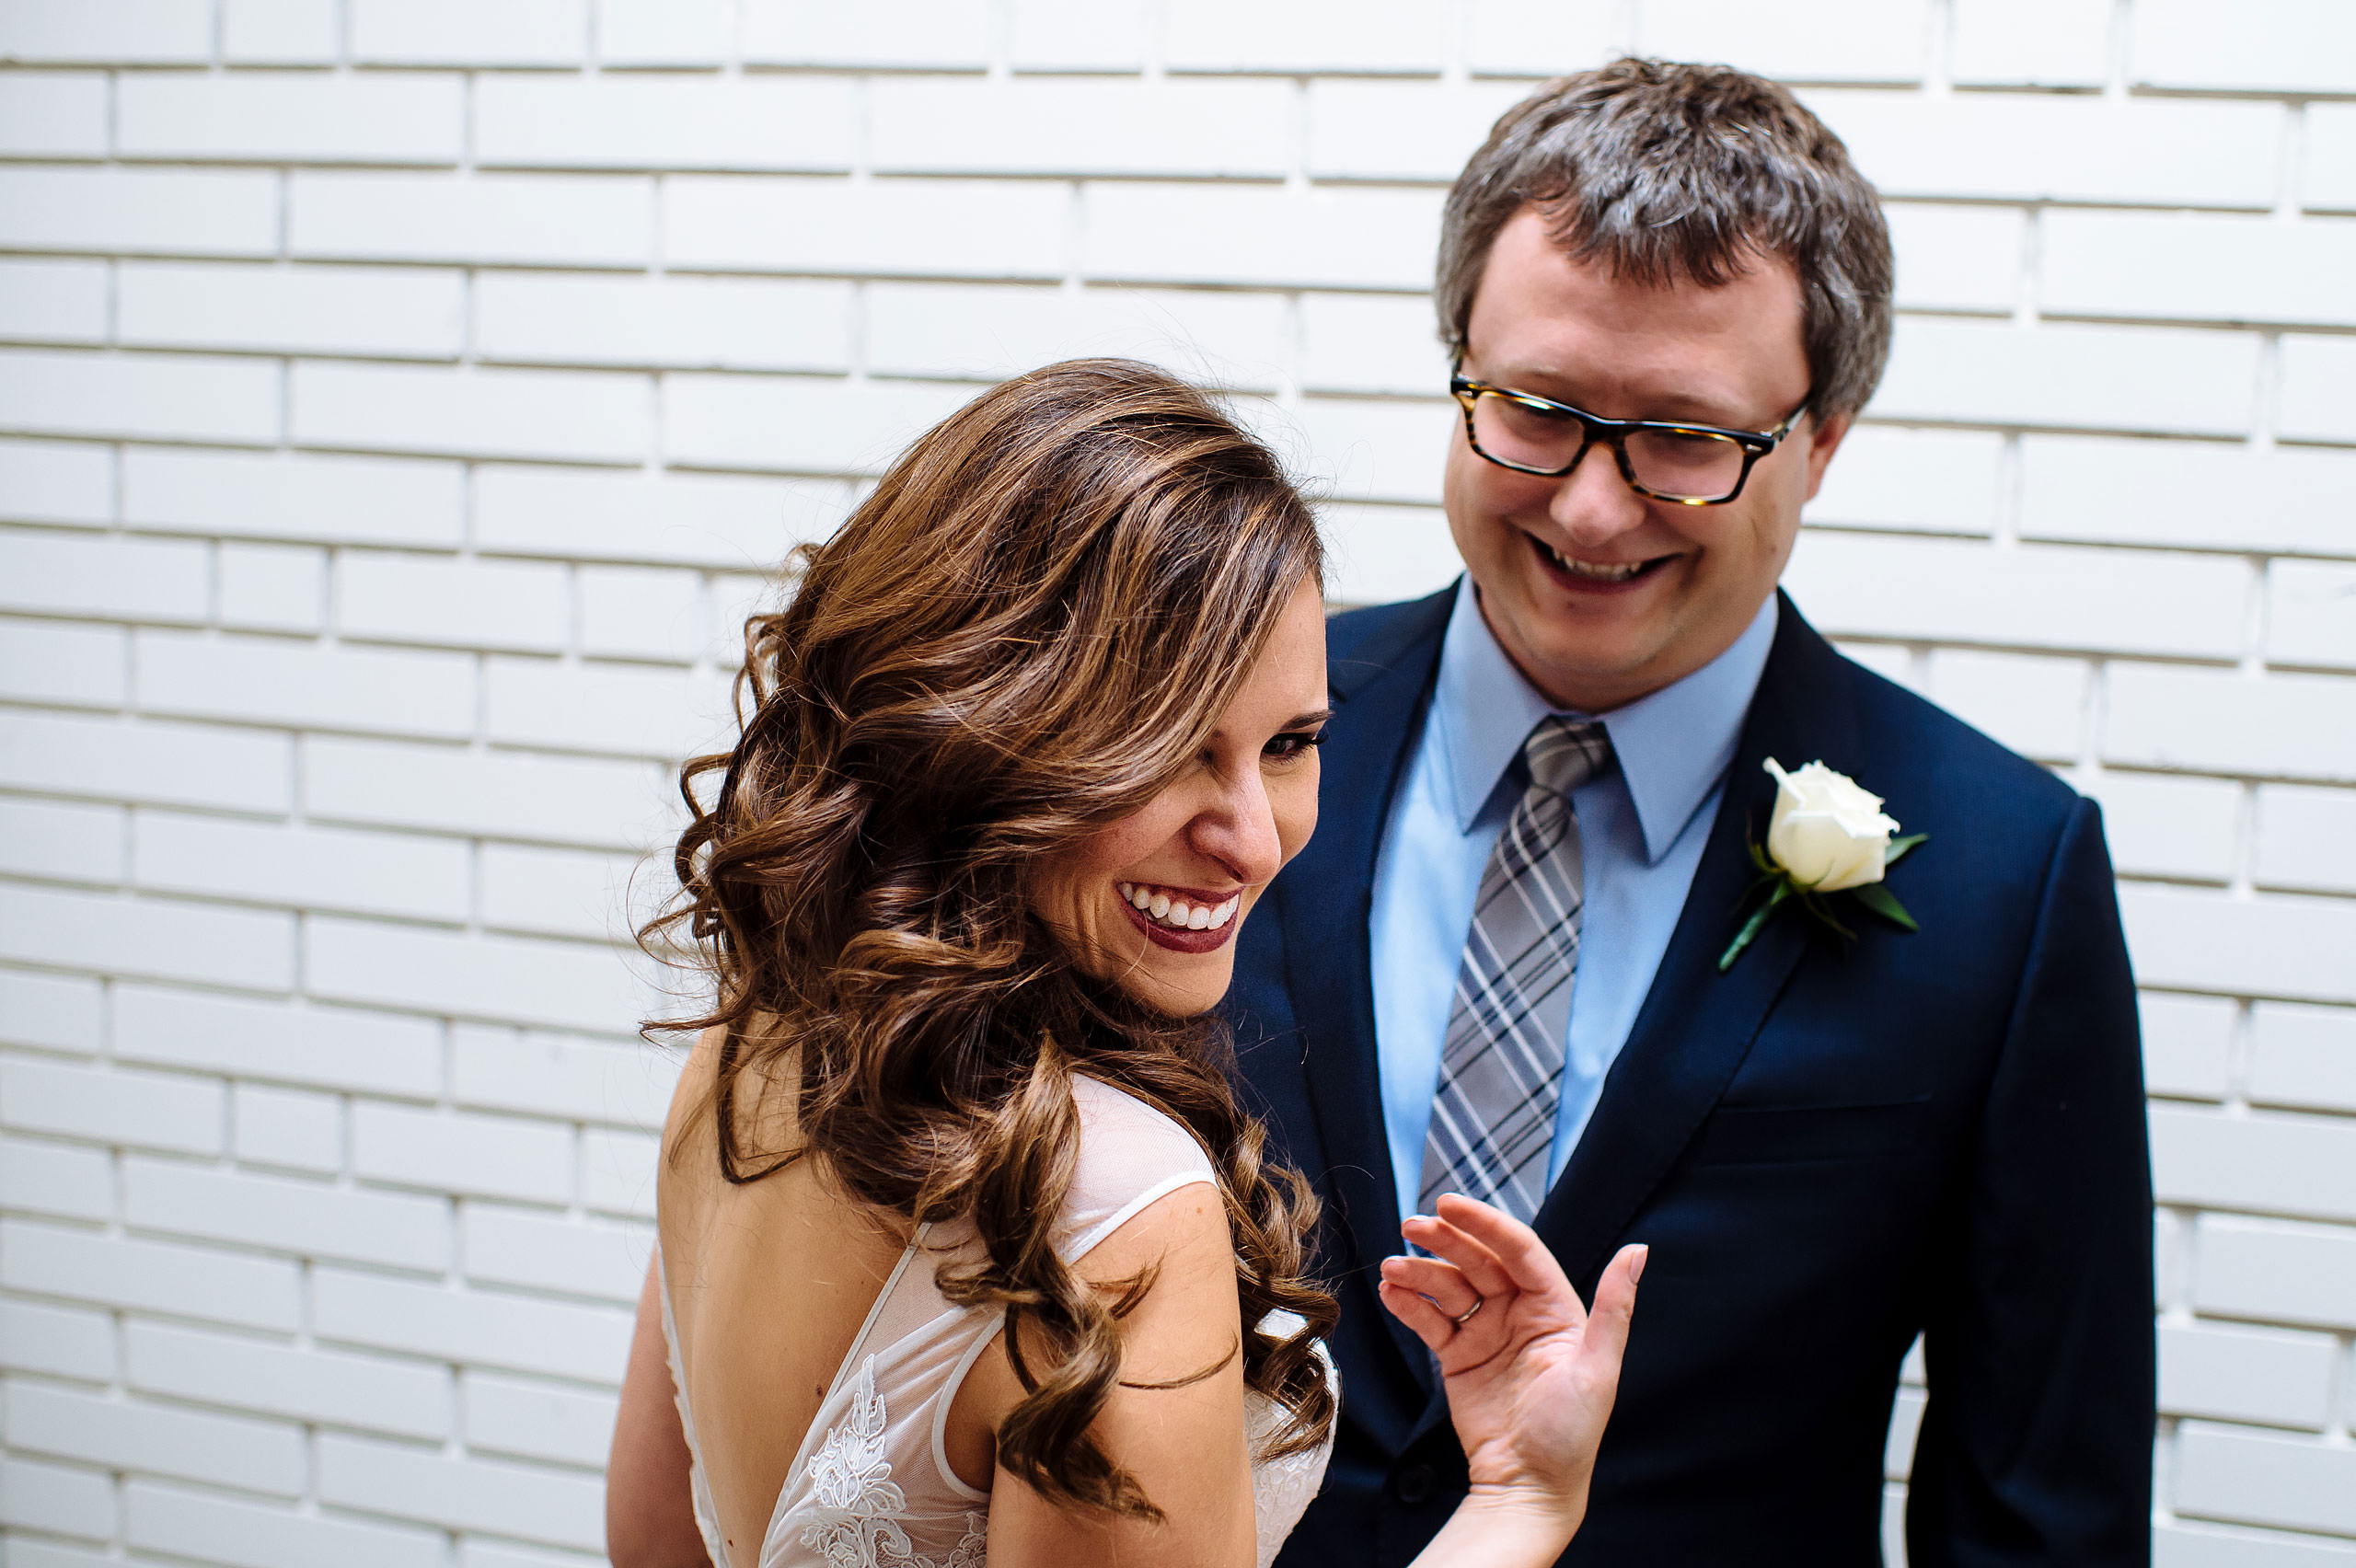 a bride seeing her groom for the first time by Calgary Jewish Wedding Photographer Sean LeBlanc